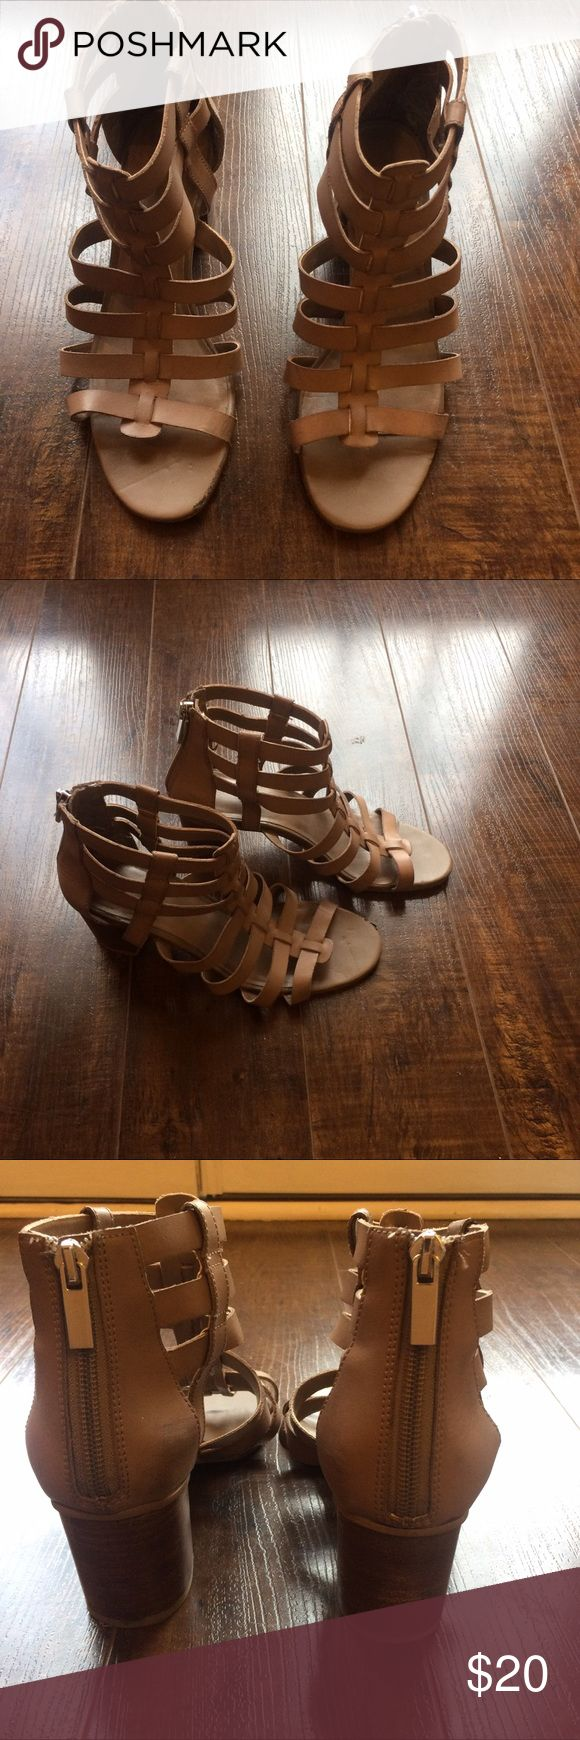 BCBGeneration Reegan Brown Sandal BCBGeneration leather brown sandals. Only worn couple of times. Great sandal to edge up any outfit. BCBGeneration Shoes Sandals